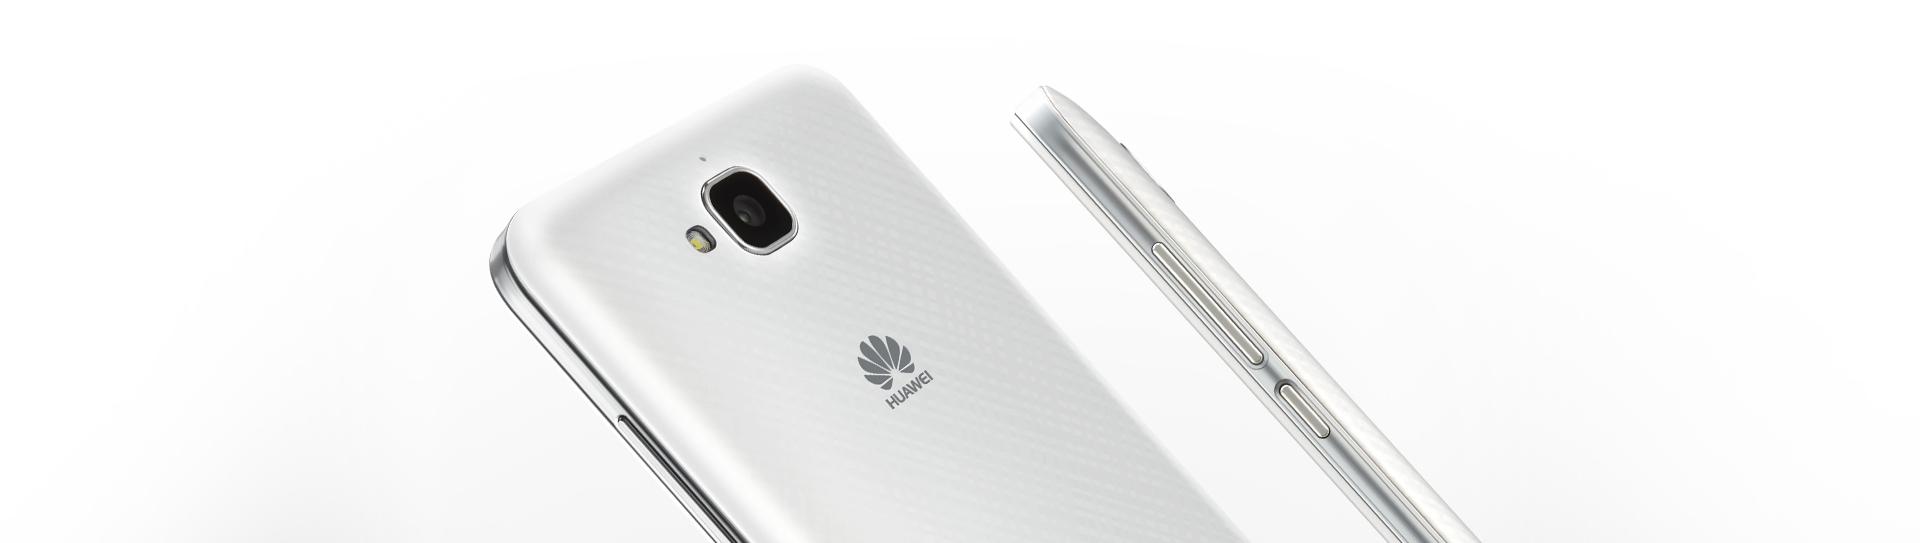 Water-ripple design makes HUAWEI Y6 PRO a fashion piece